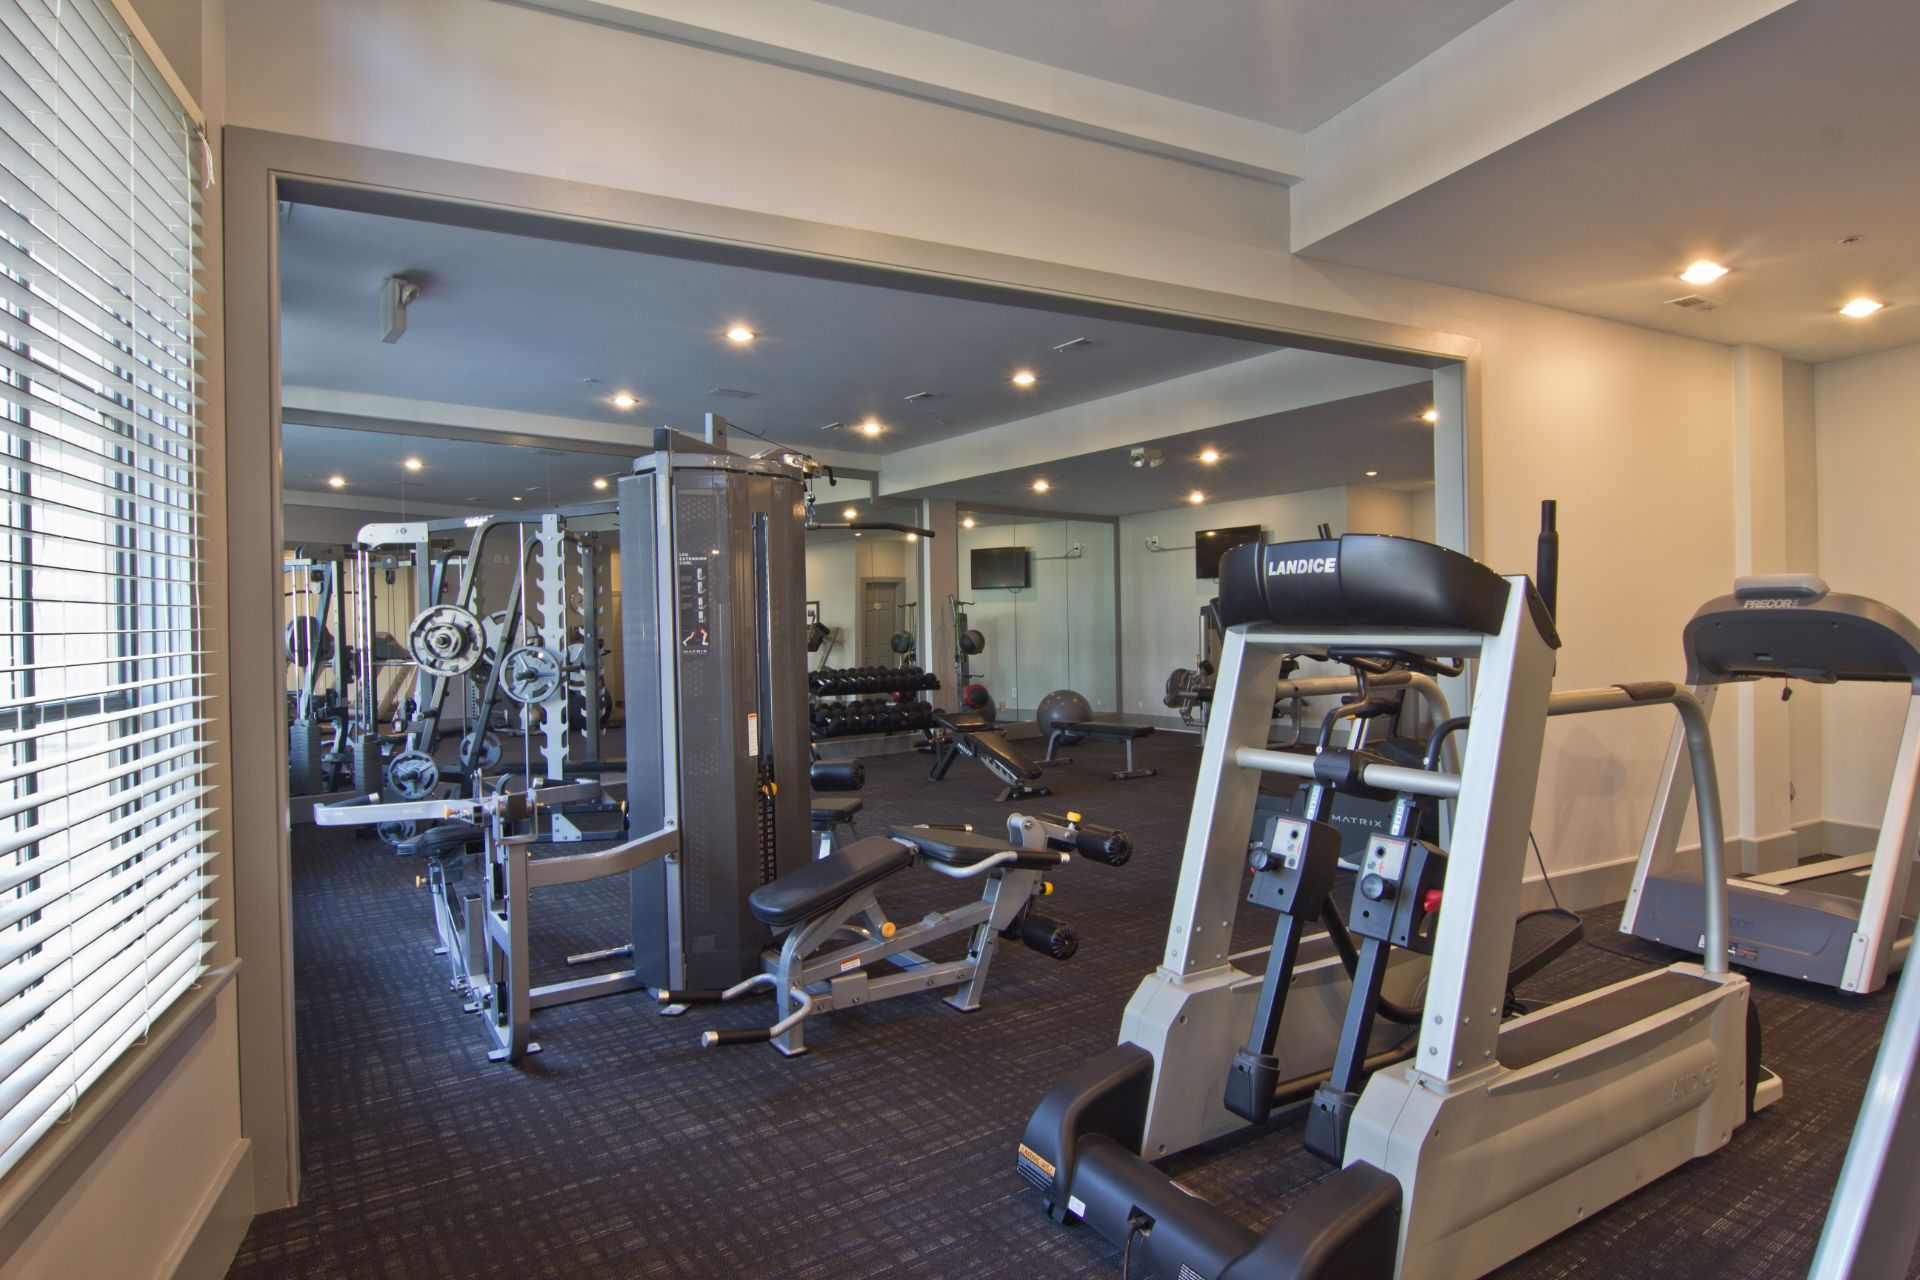 Easton Commons Apartments and Townhomes with Fitness and Cardio Center 4011 Easton Way Columbus OH 43219